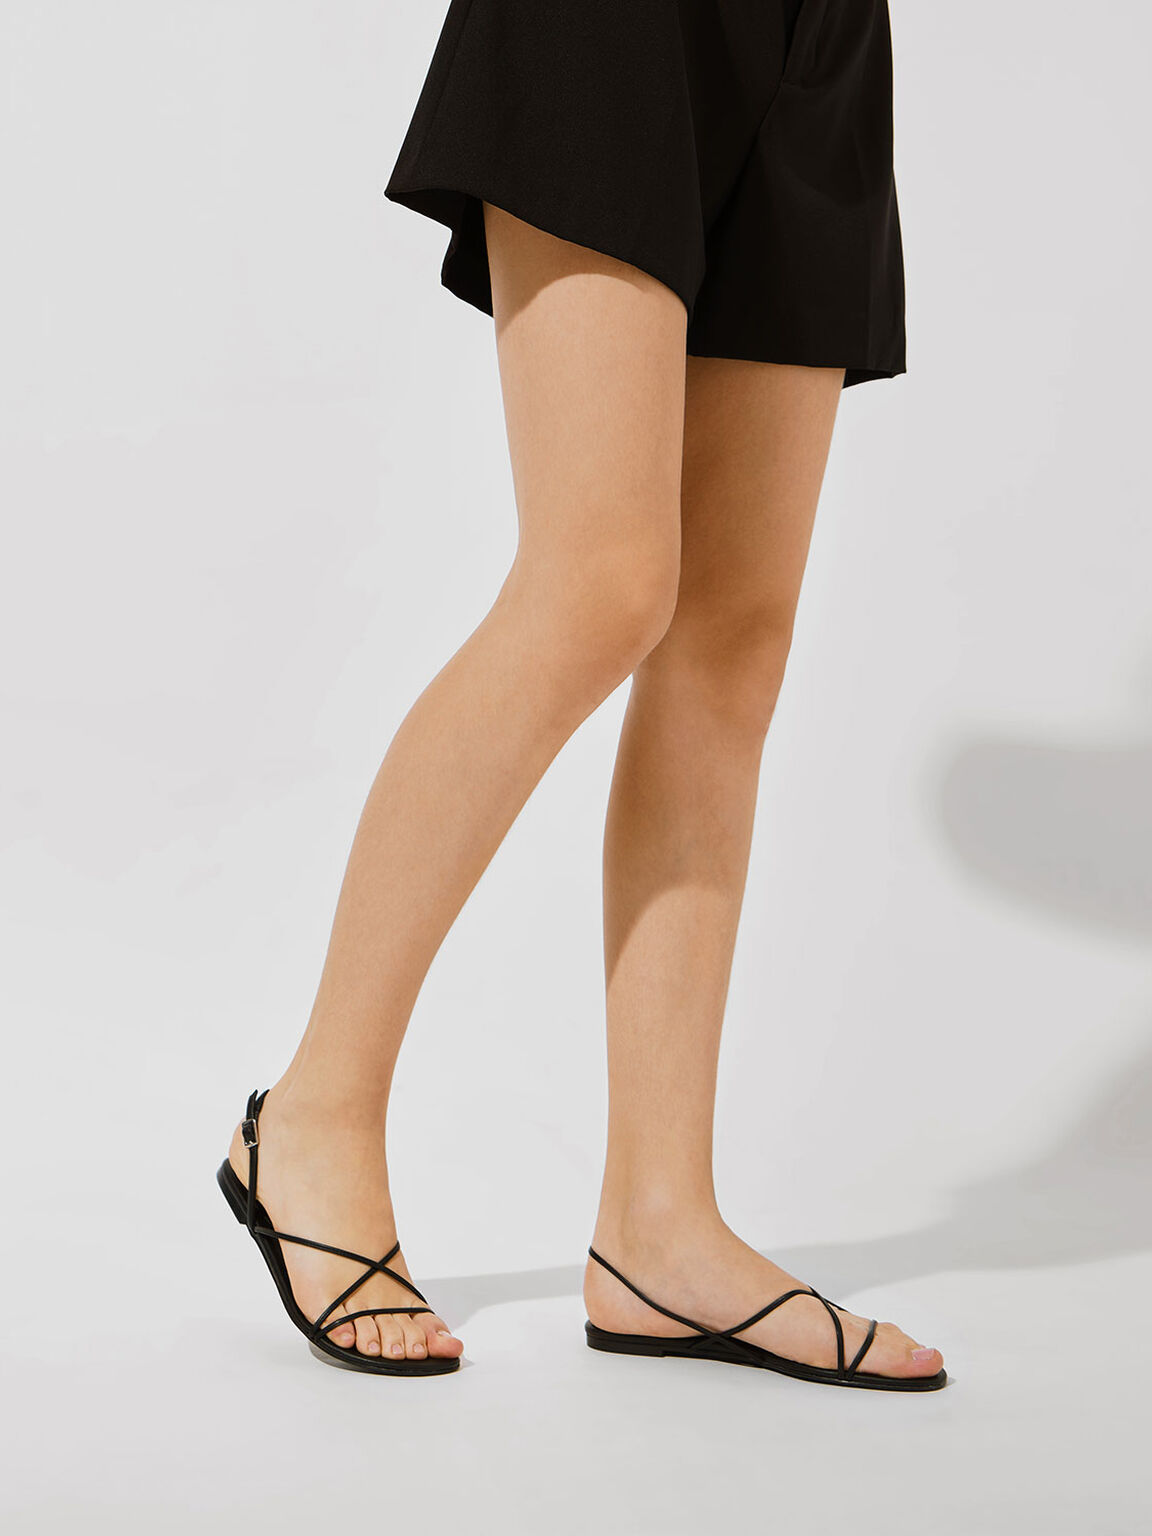 Strappy Flat Sandals, Black, hi-res